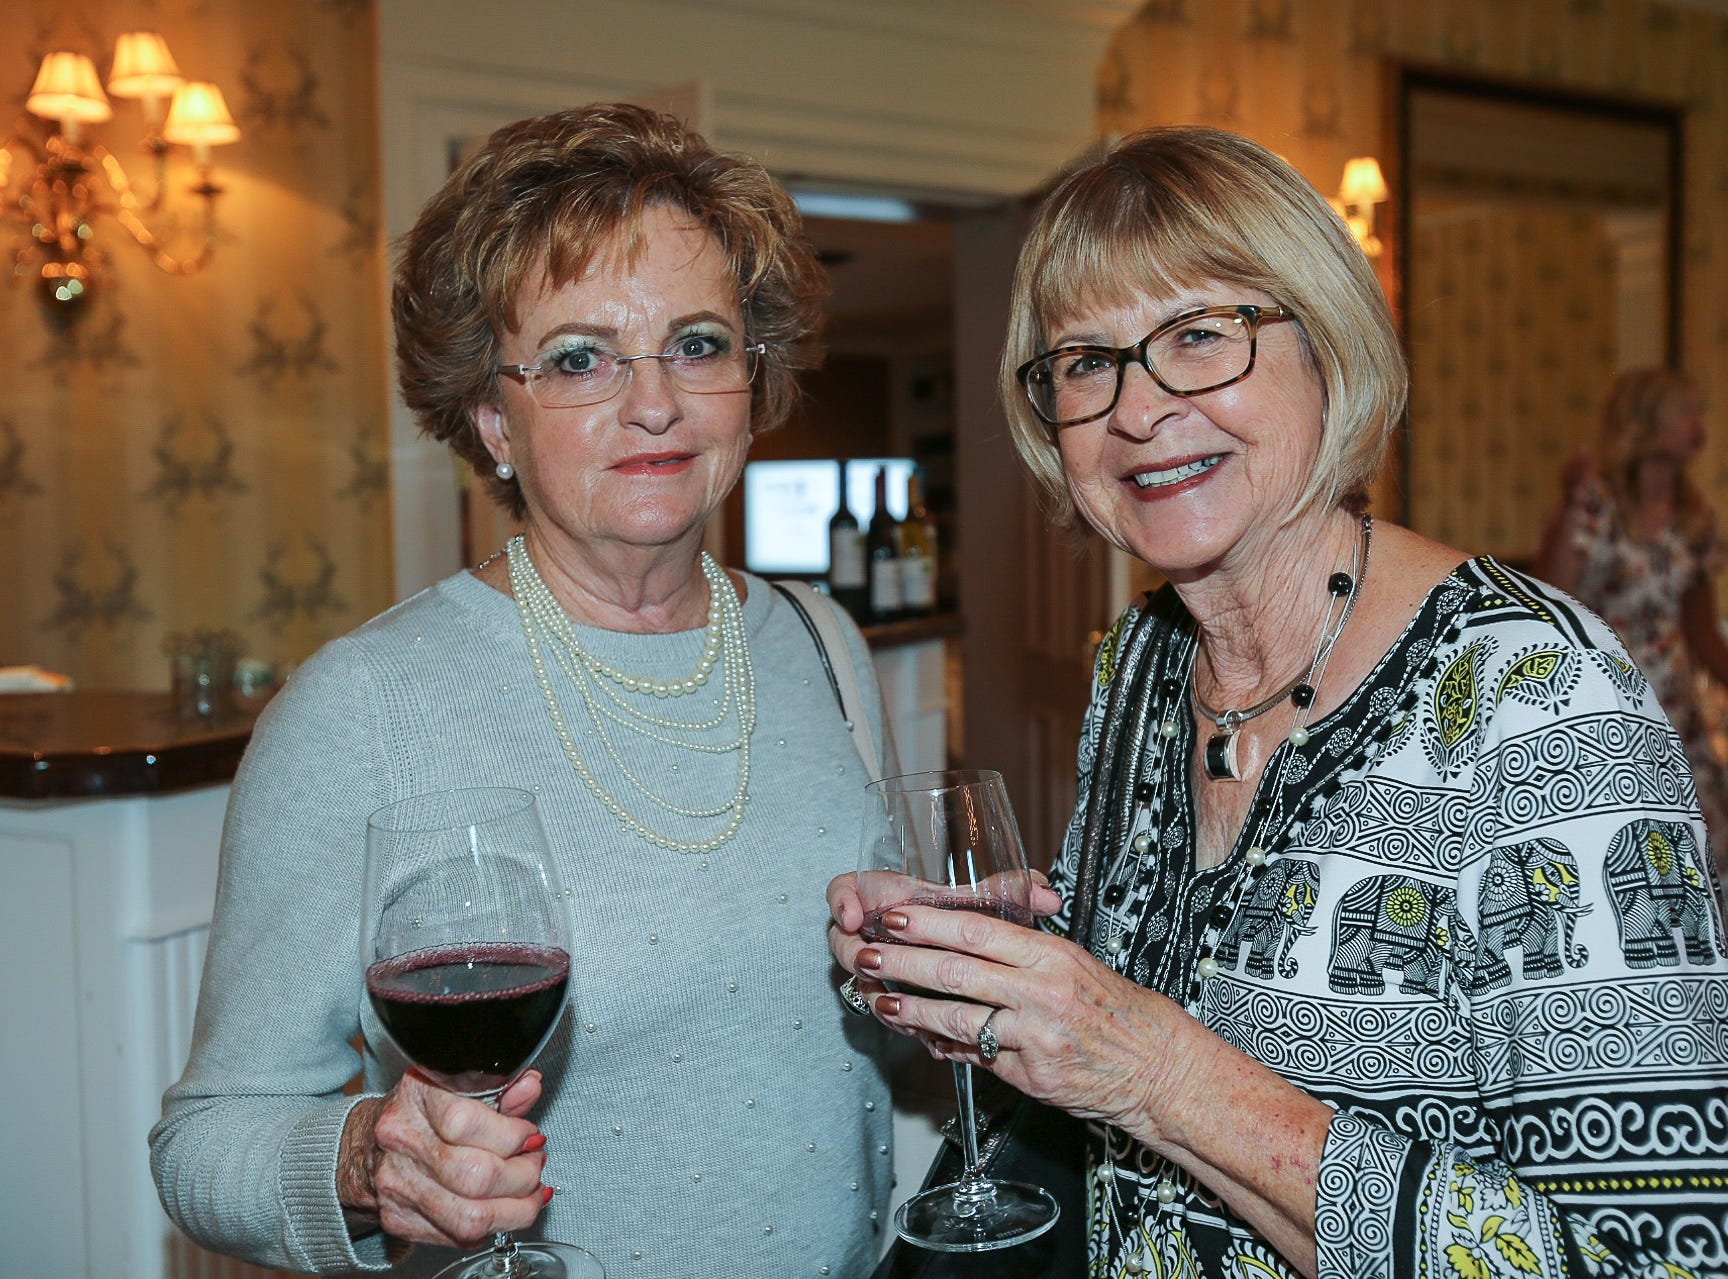 Mertie Jones and Sharon Cotton